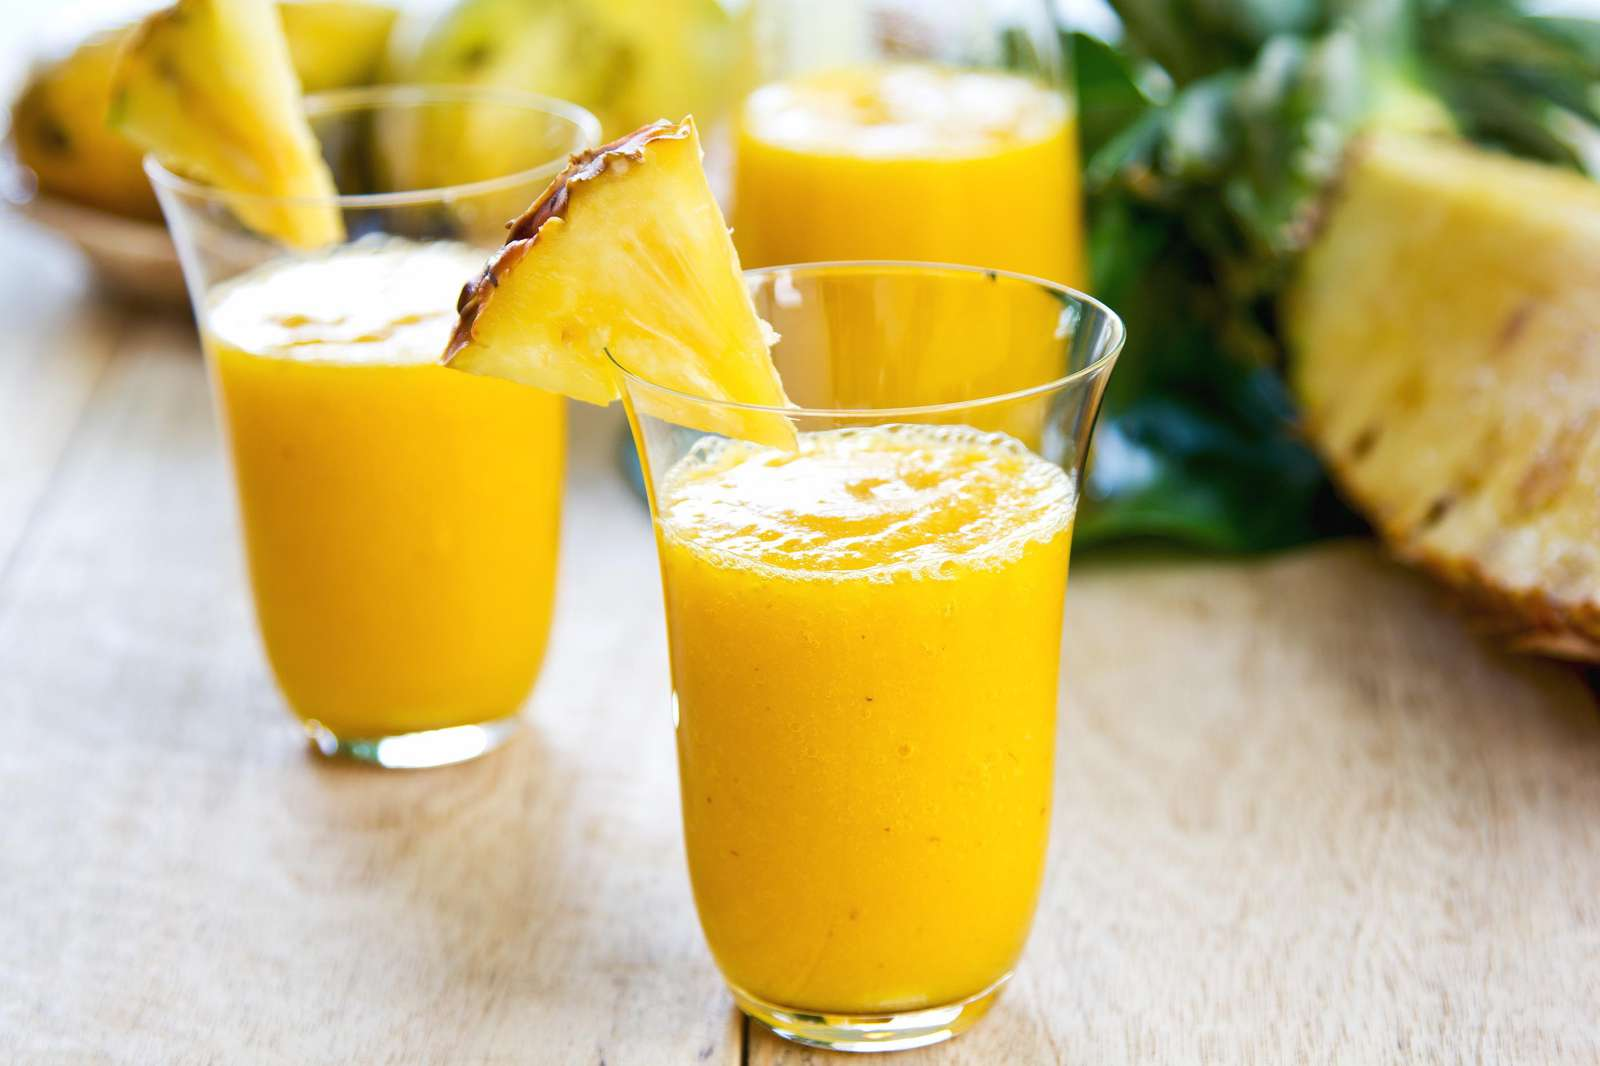 Use your provided blender for morning smoothies or afternoon Pina Coladas!